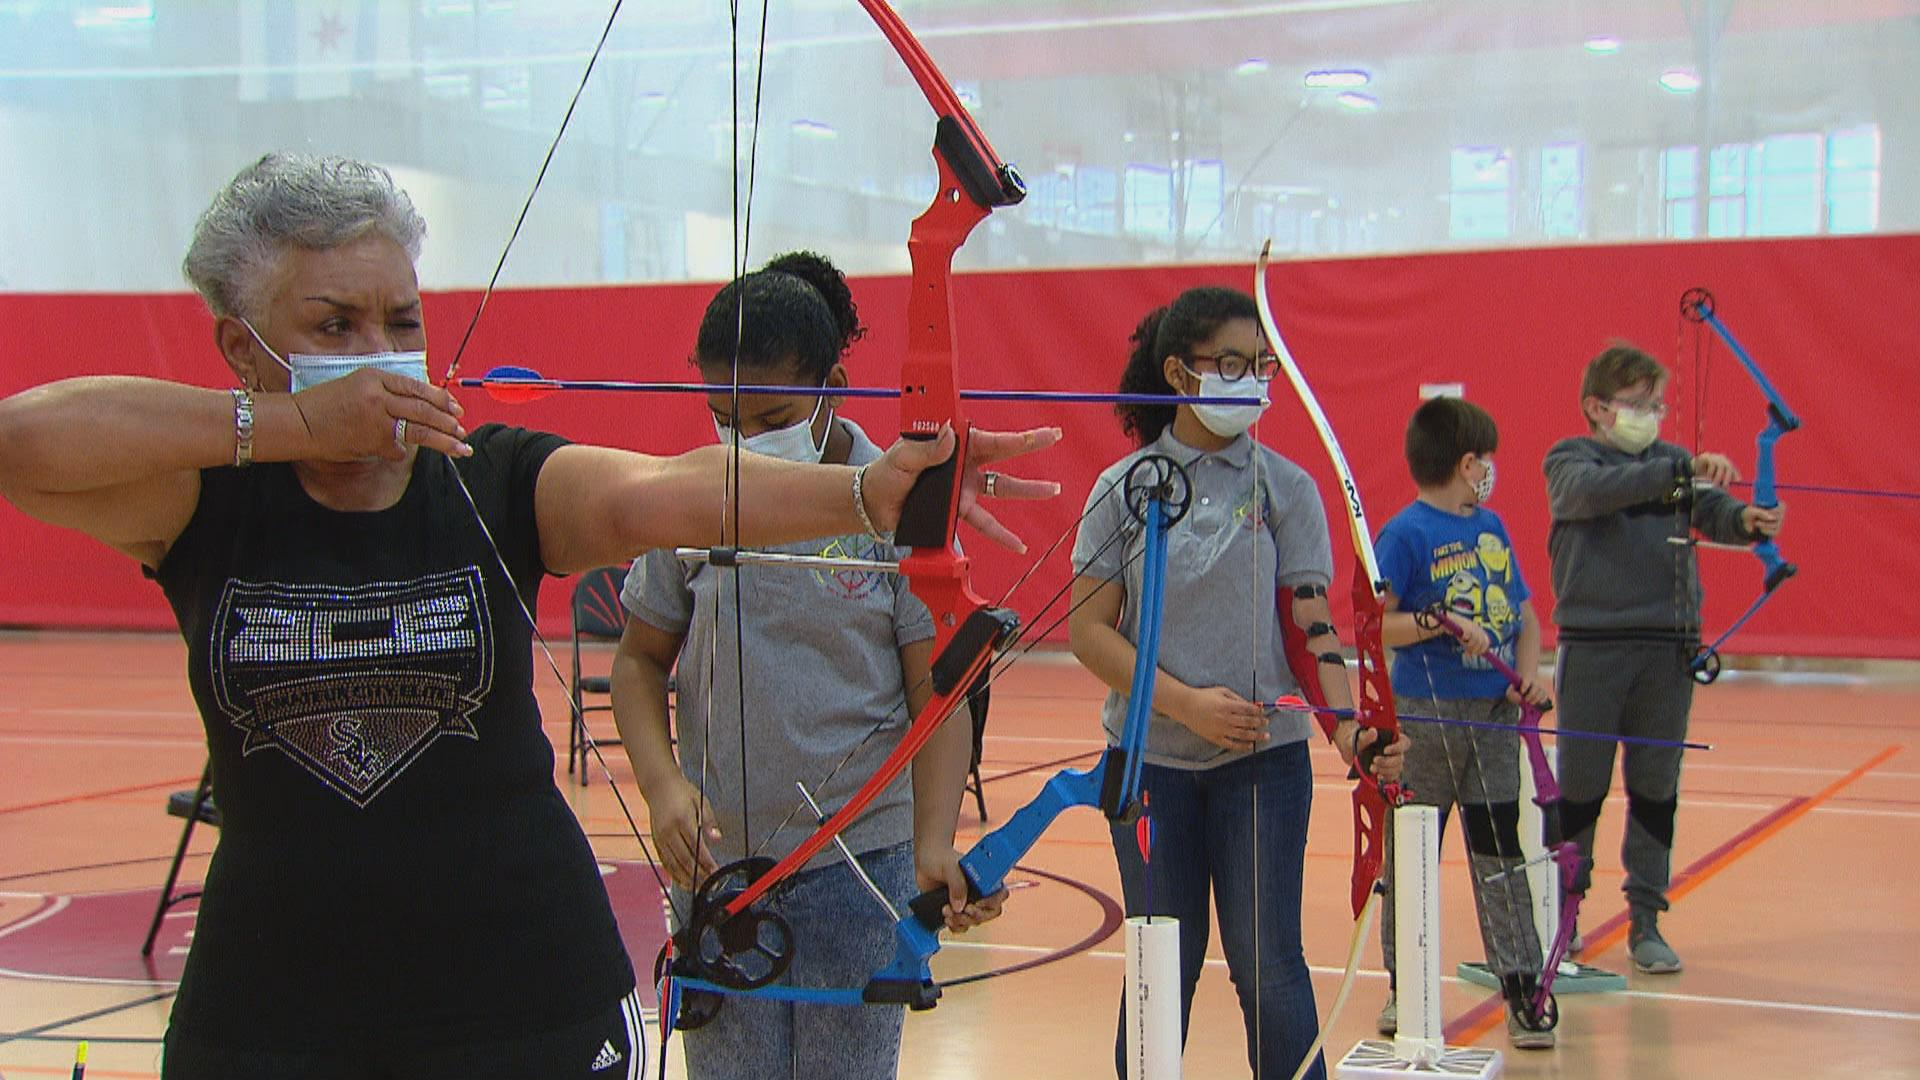 Archers practice their shooting during a lesson held by the Chicago Archery Club at the Kroc Center Chicago on Nov. 19, 2020. (WTTW News)